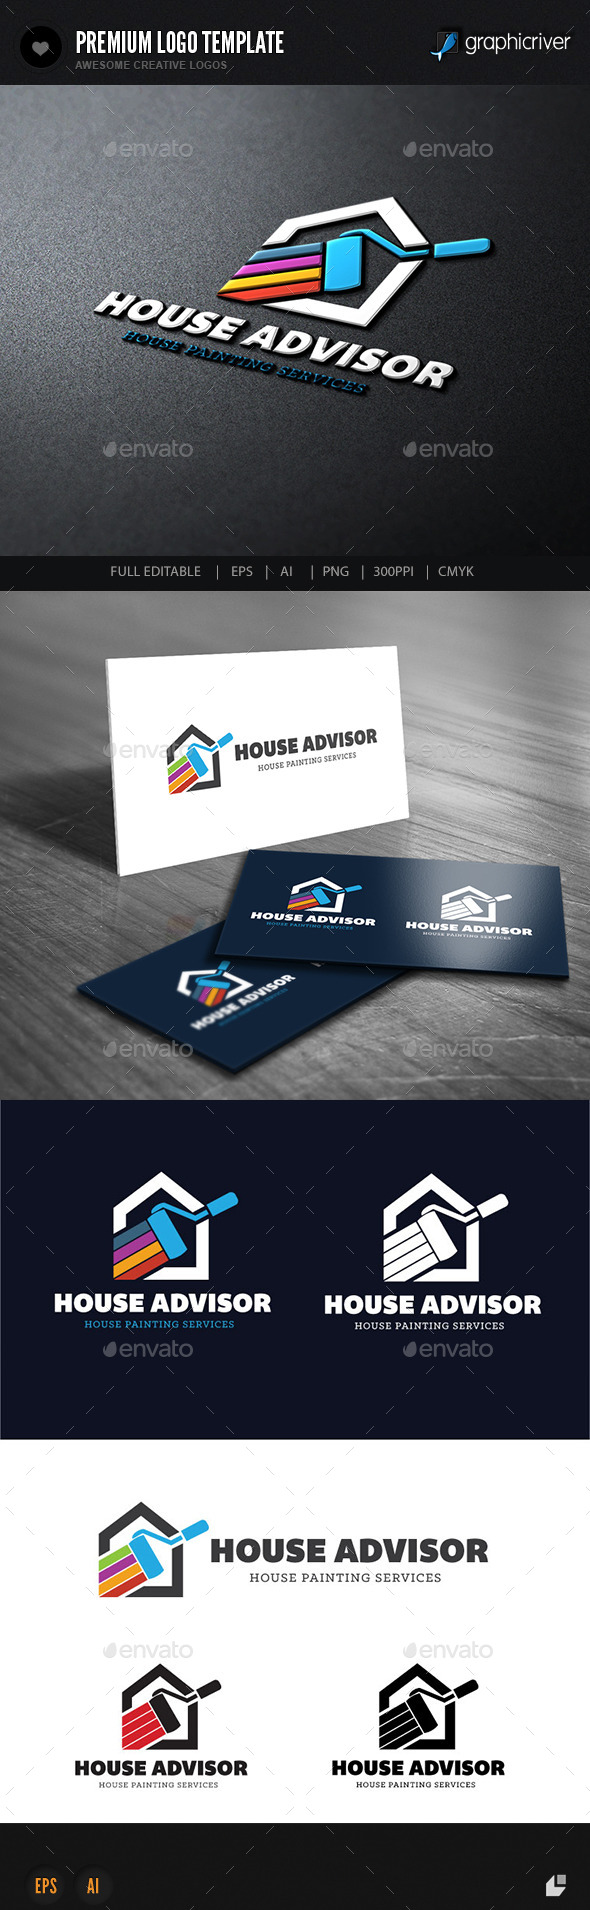 GraphicRiver House Advisor 9279222